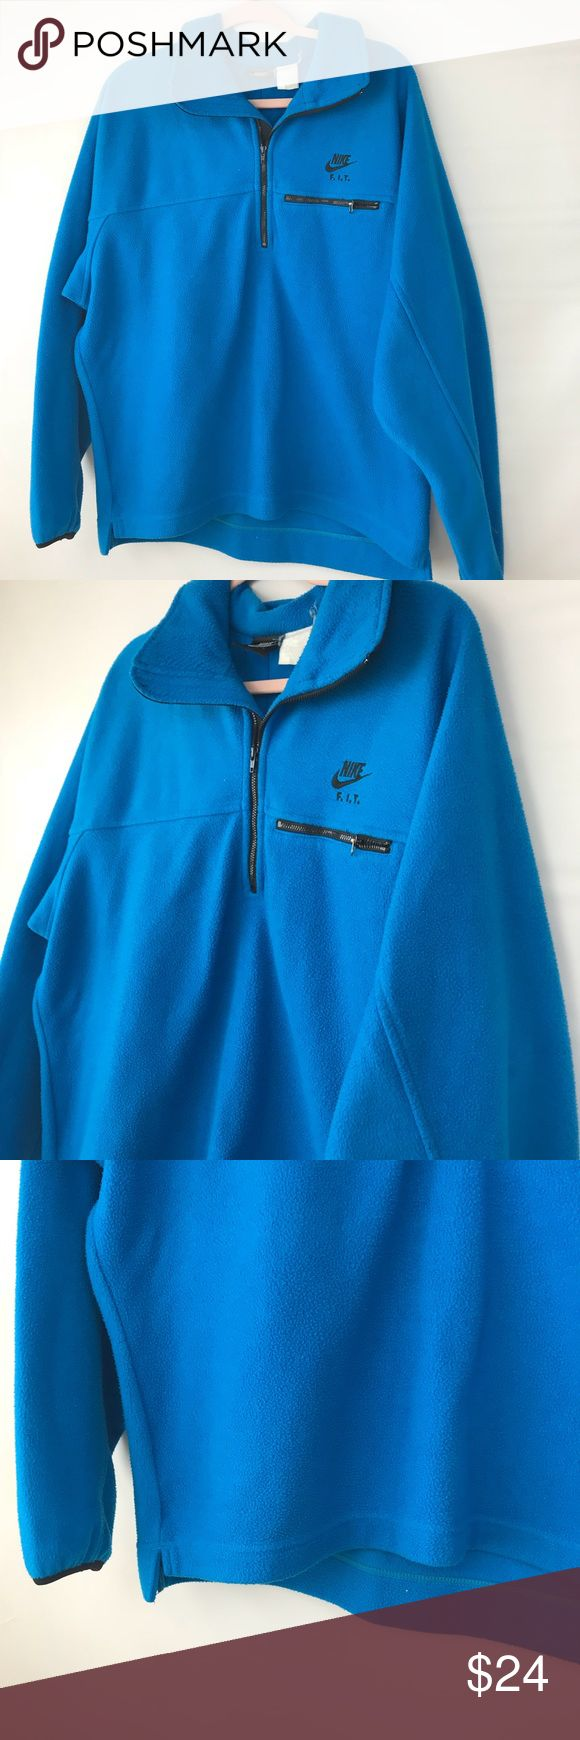 "NIKE FIT fleece Sweater Top Blue Mens Size Large Nike Fit Fleece Top Mens Size Large Blue  Pit to pit 25"" Length is 27"" Sleeve is 25"" Please note that this is a used item. Normal fade from wash and wear.  #N Nike Sweaters"